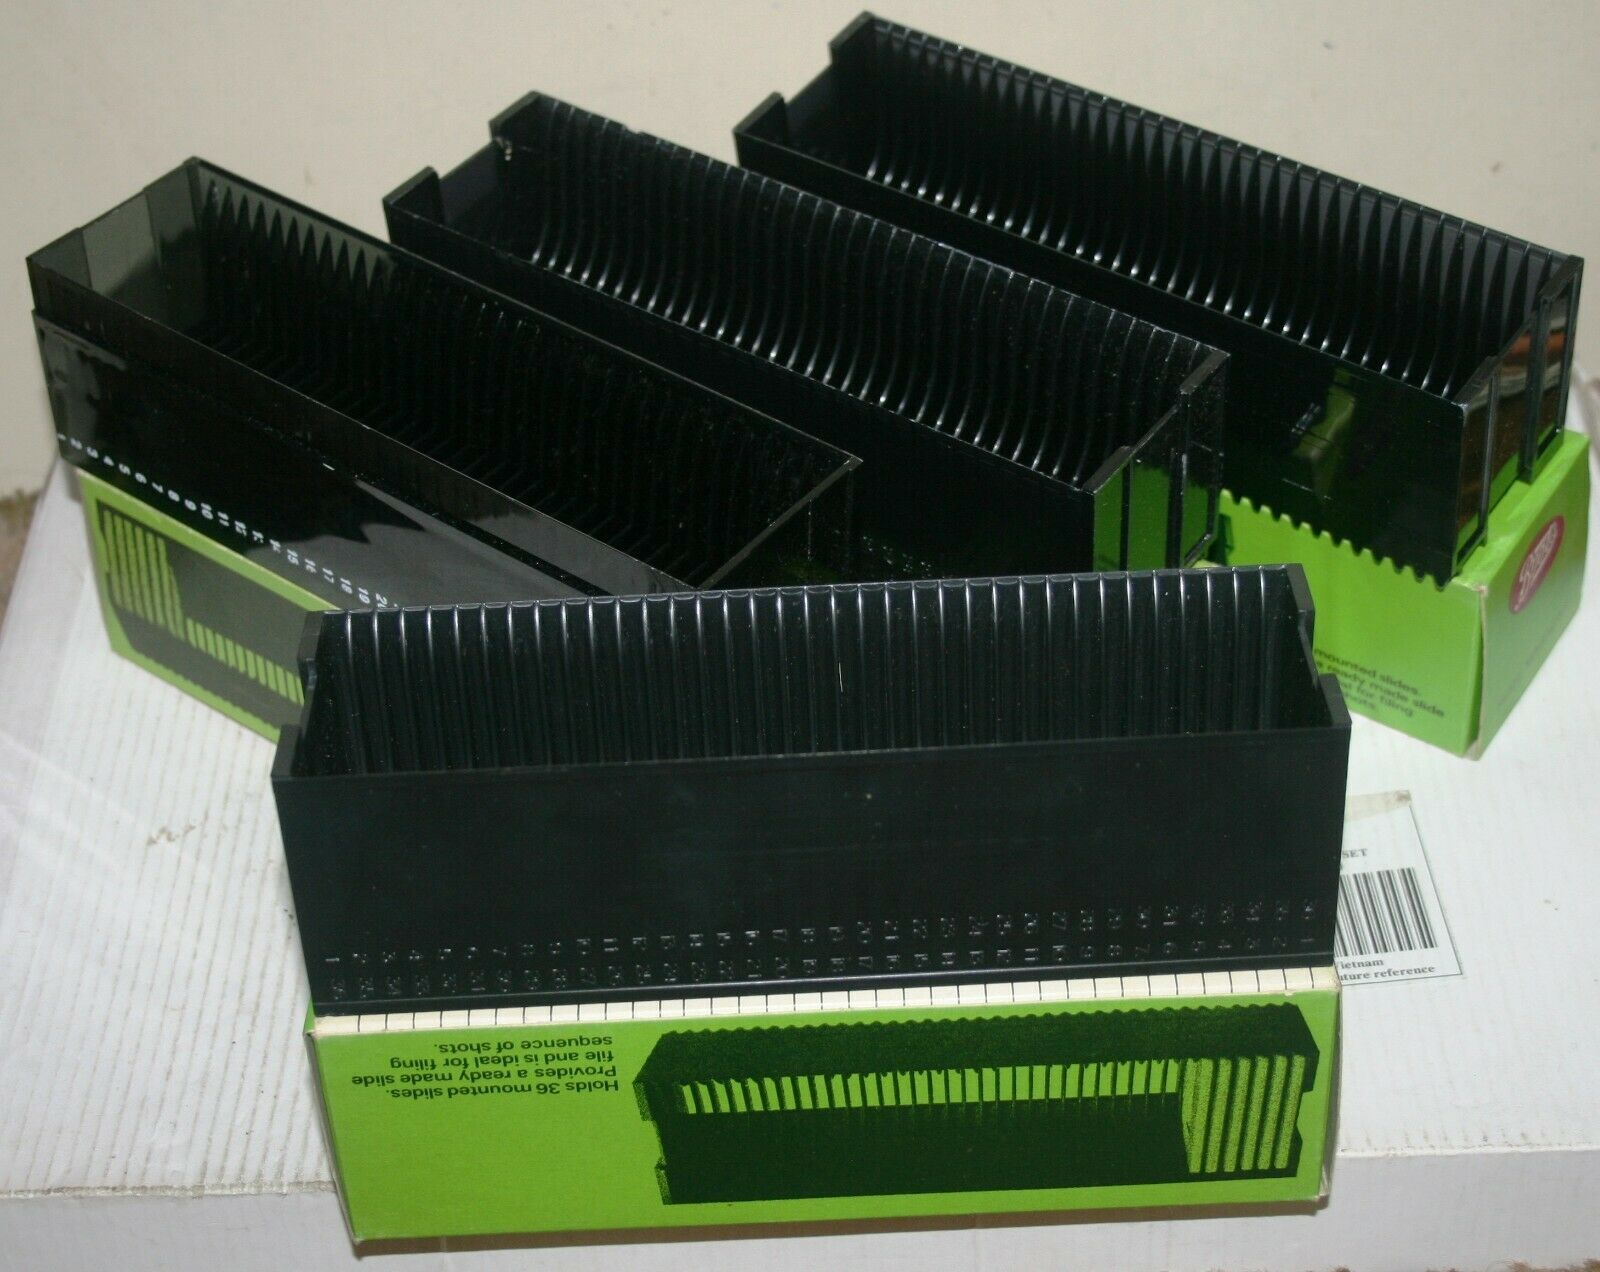 4 Various Boots / Gnome 35mm Slide Transparency Magazine - Each Holds 36 Slides